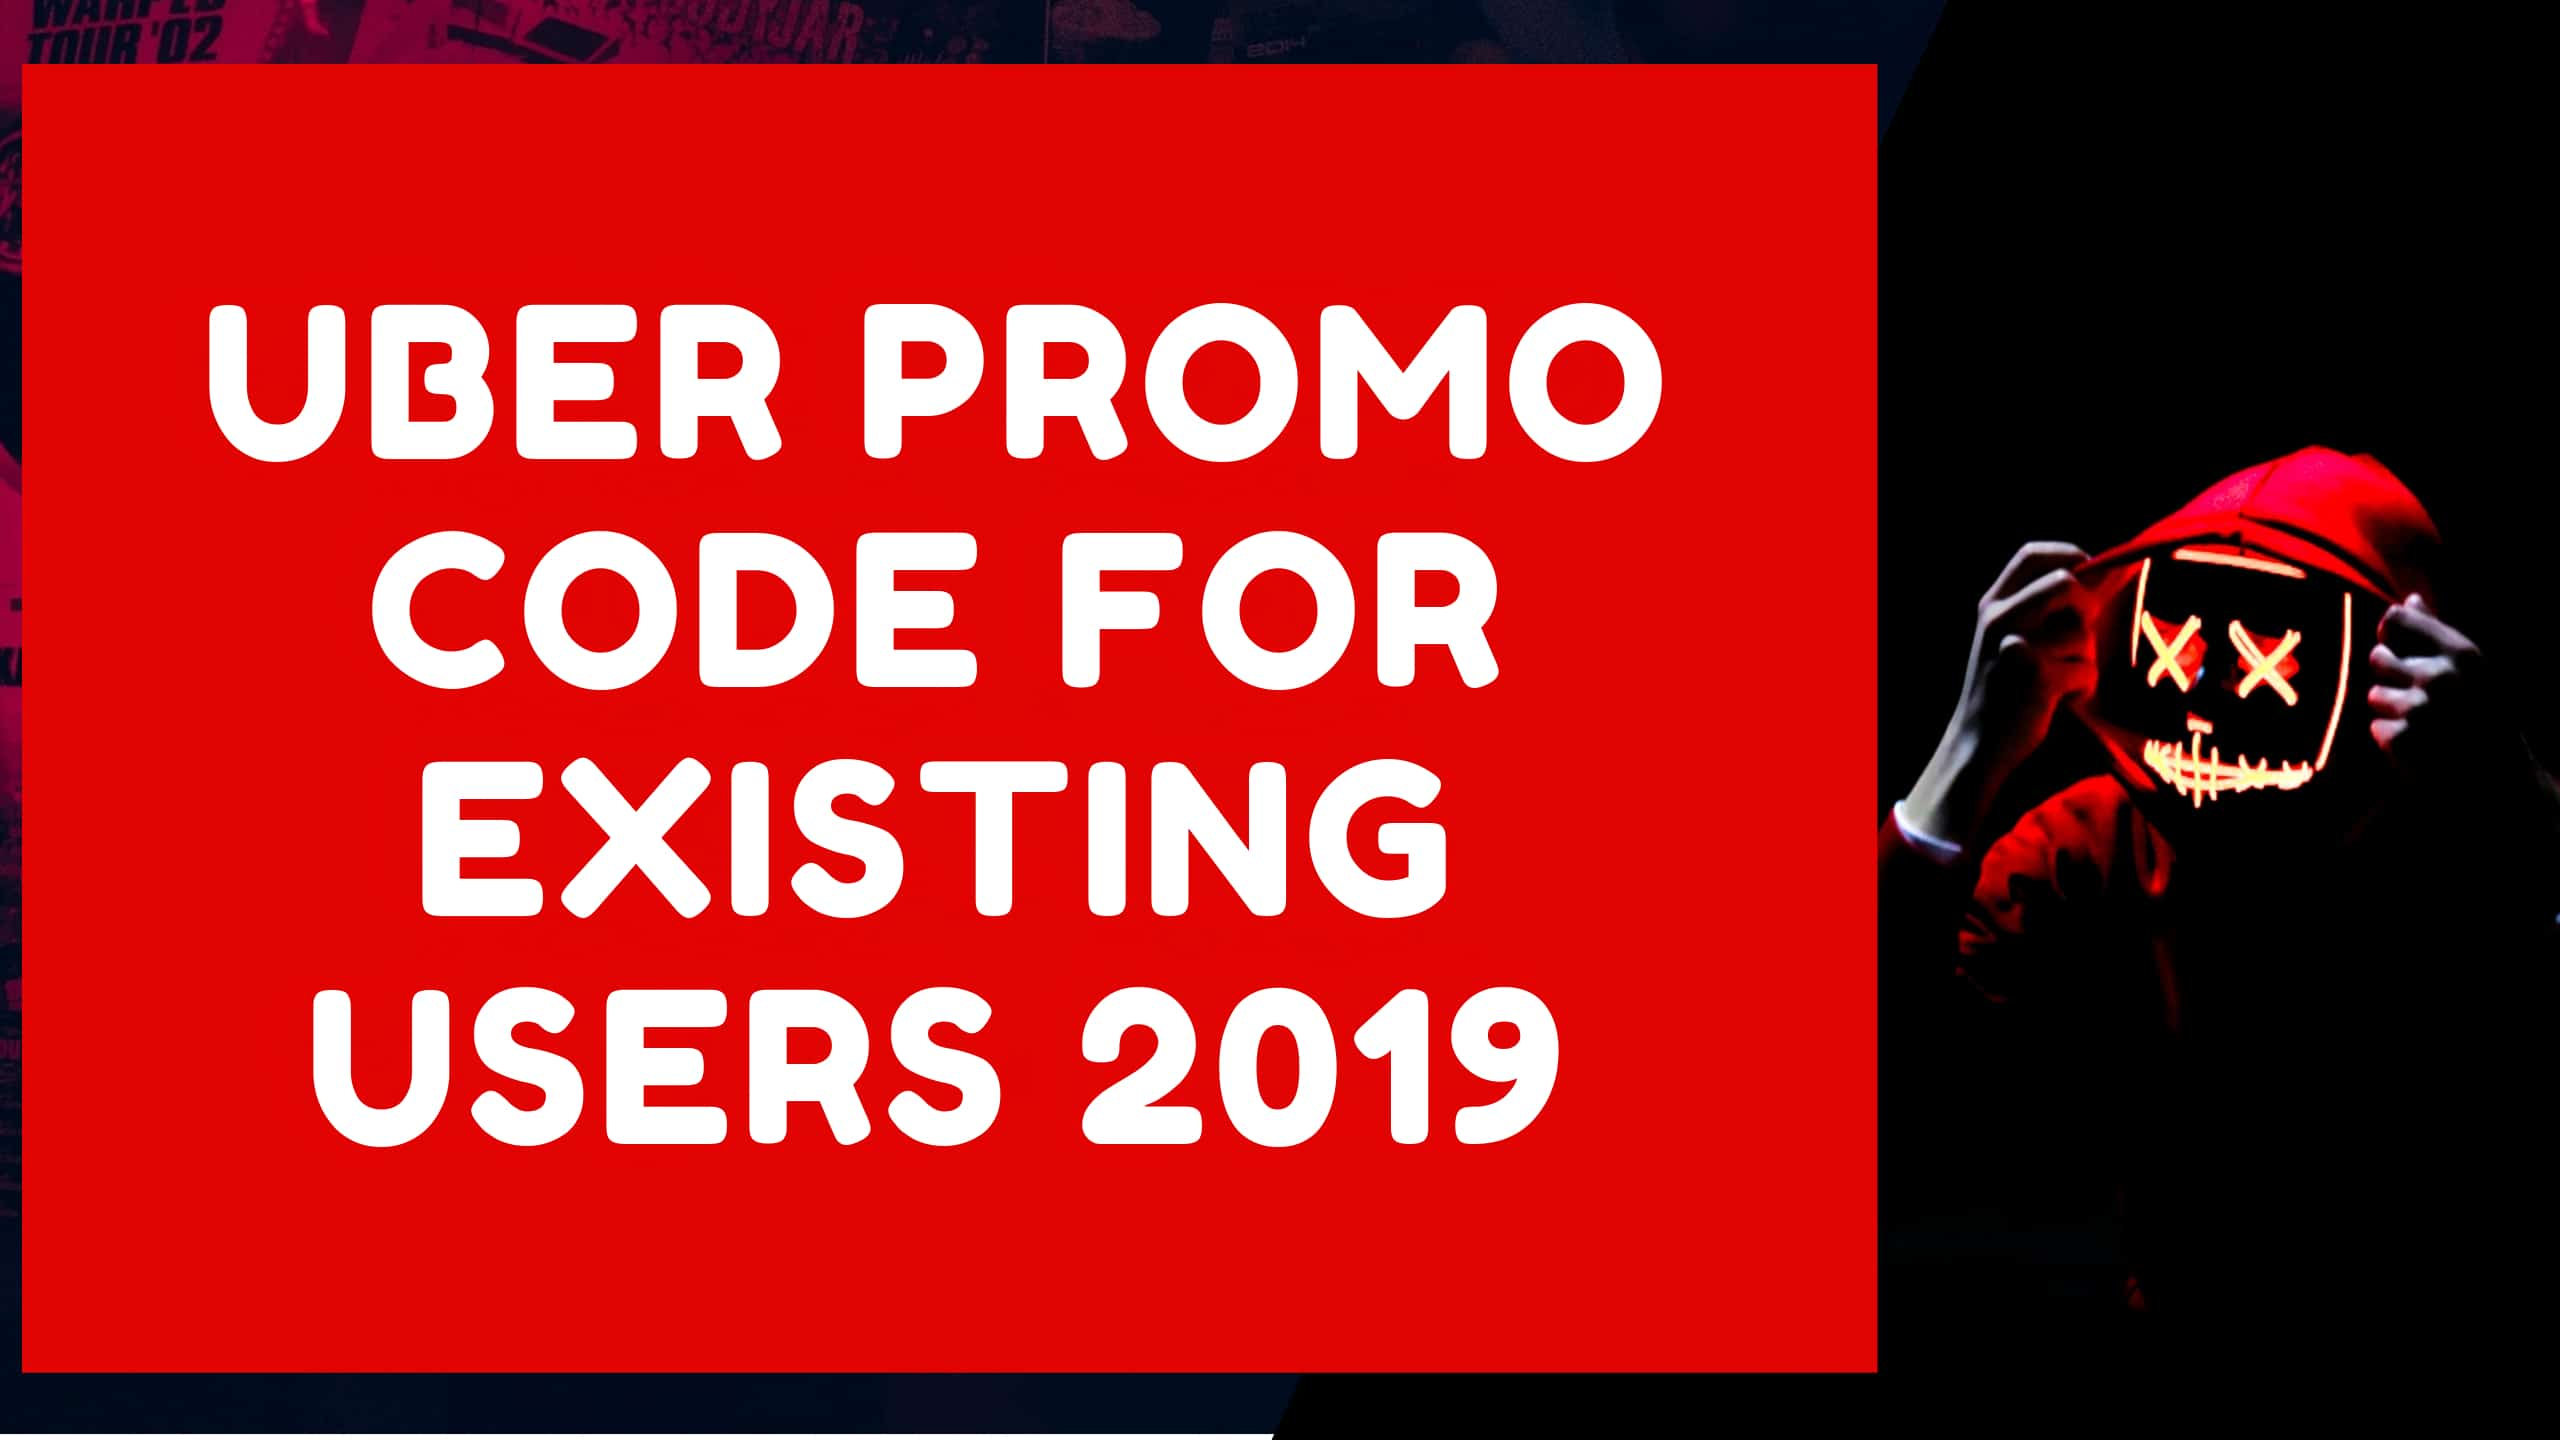 100% Exclusive: $50 Uber Promo Code For Existing Users - Aug 2019